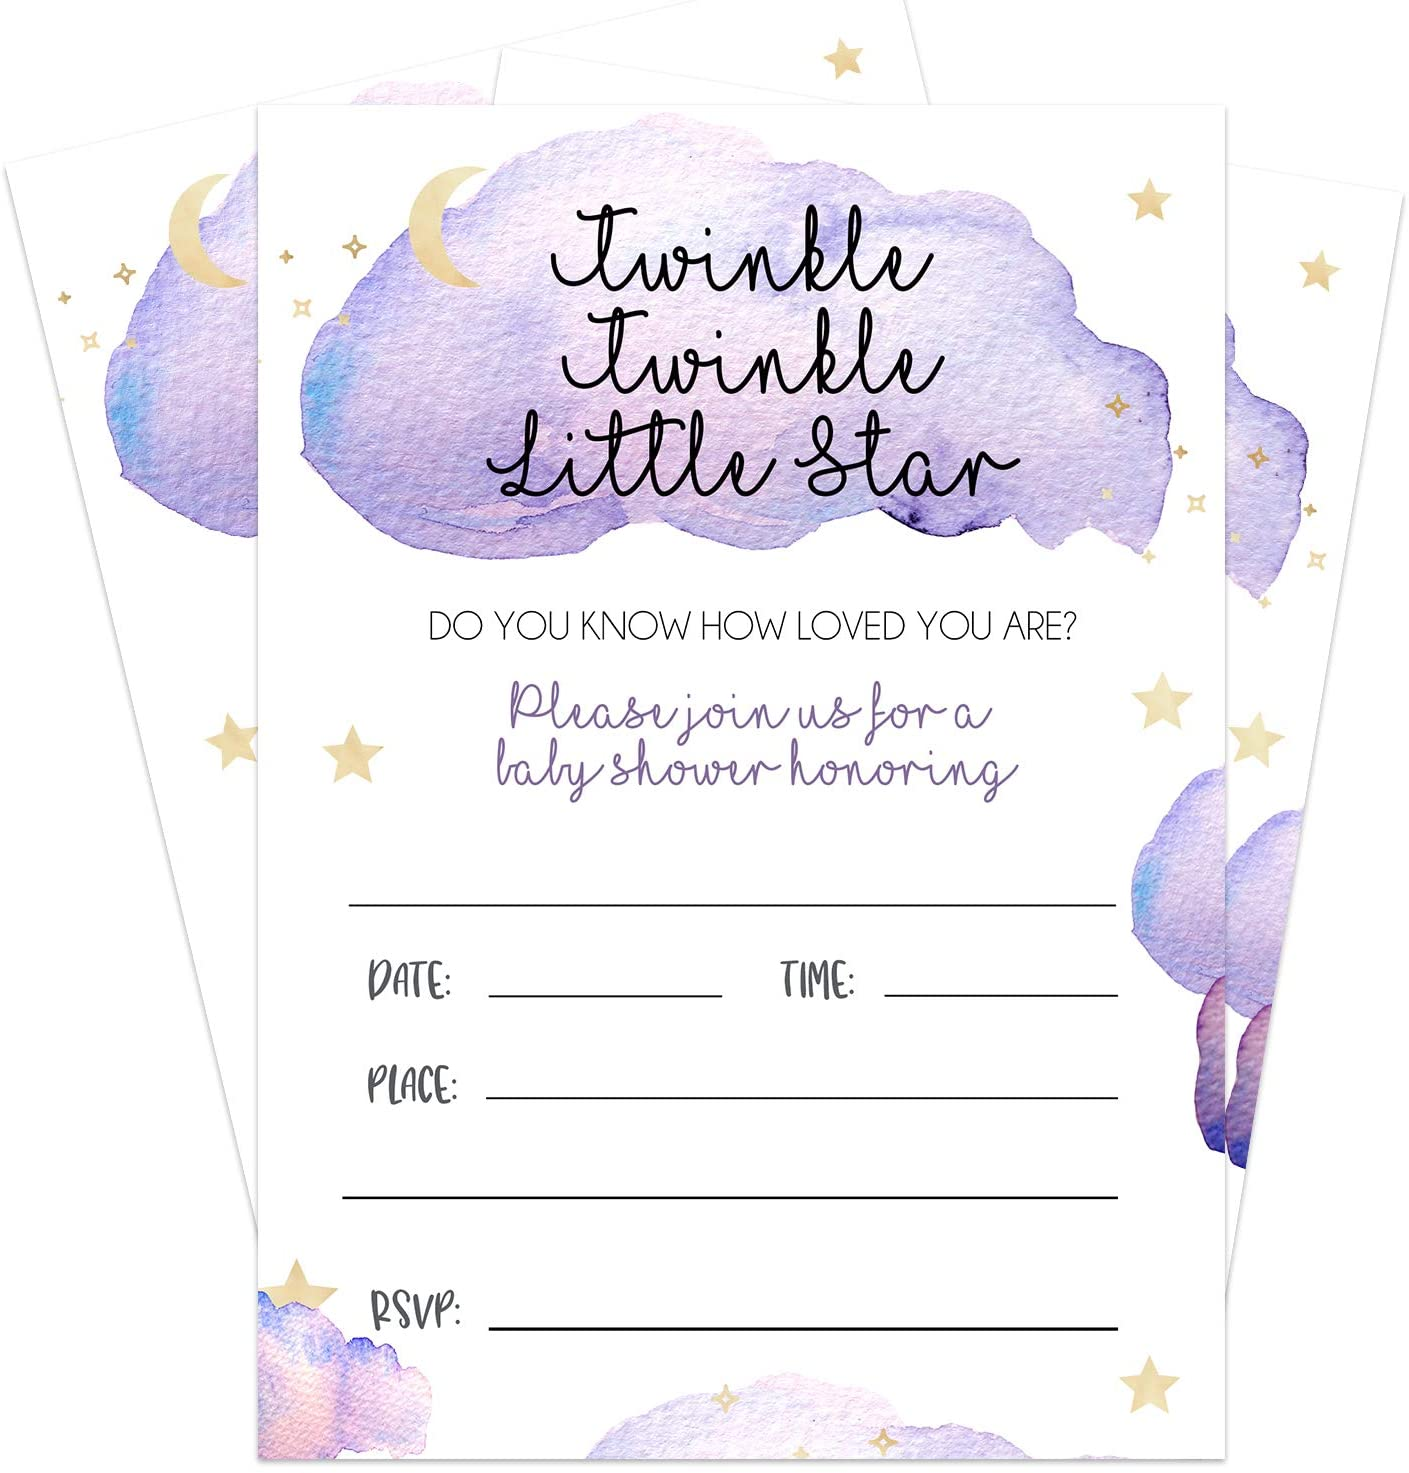 20 Twinkle Twinkle Little Star Invites - Fill In Baby Shower Invitations For Boy Or Girl Baby Shower